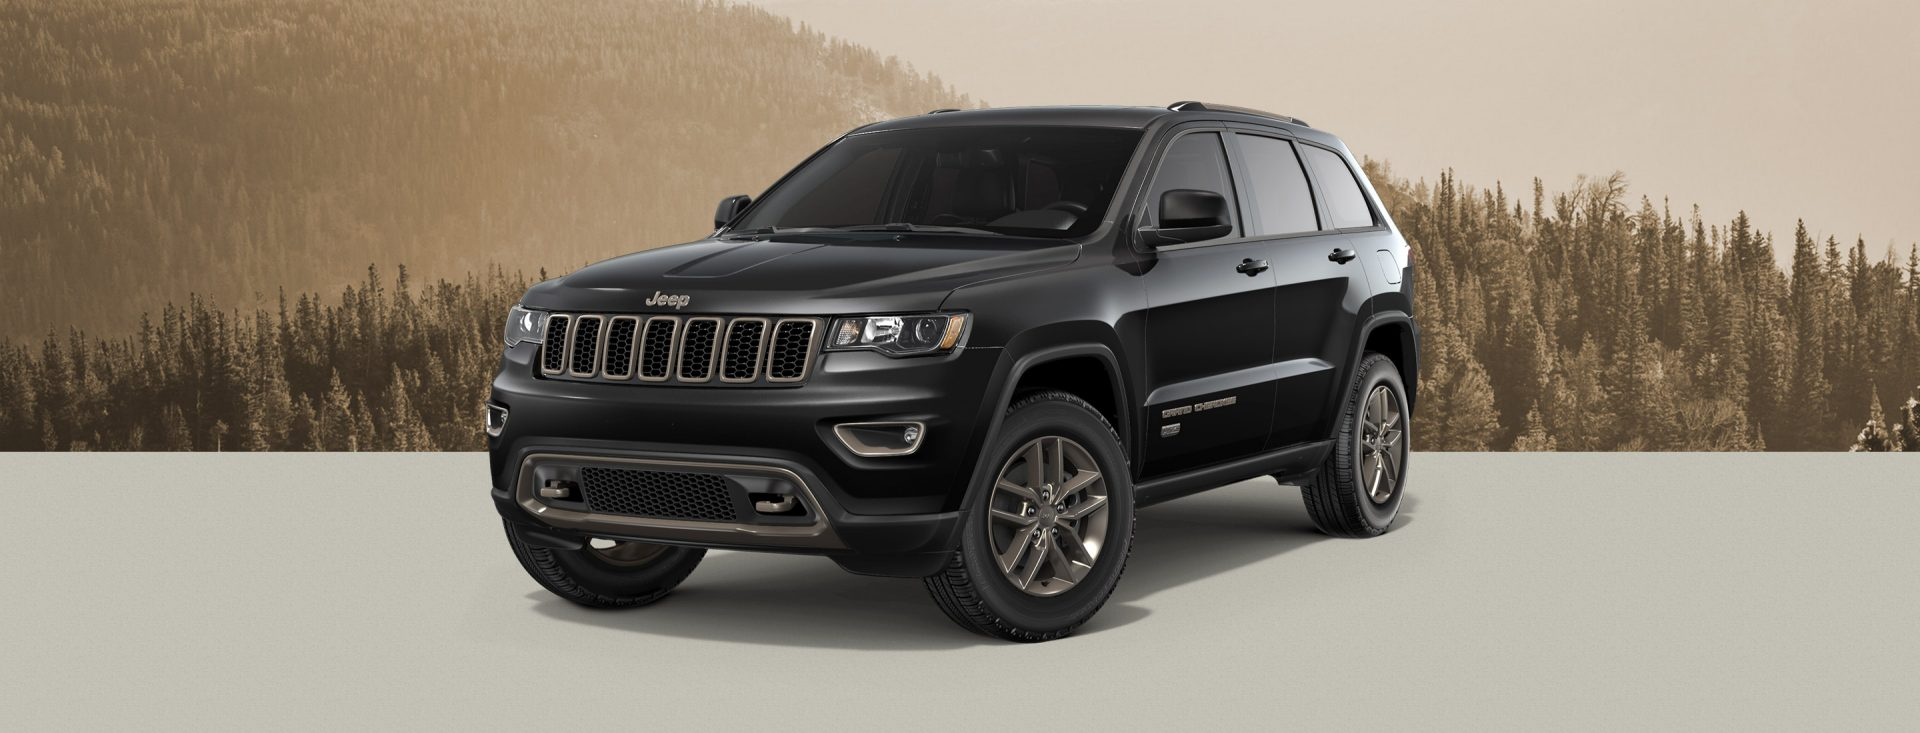 2009 jeep grand cherokee engine diagram 30 jeep pdf manuals download for free    ar pdf manual  wiring  30 jeep pdf manuals download for free